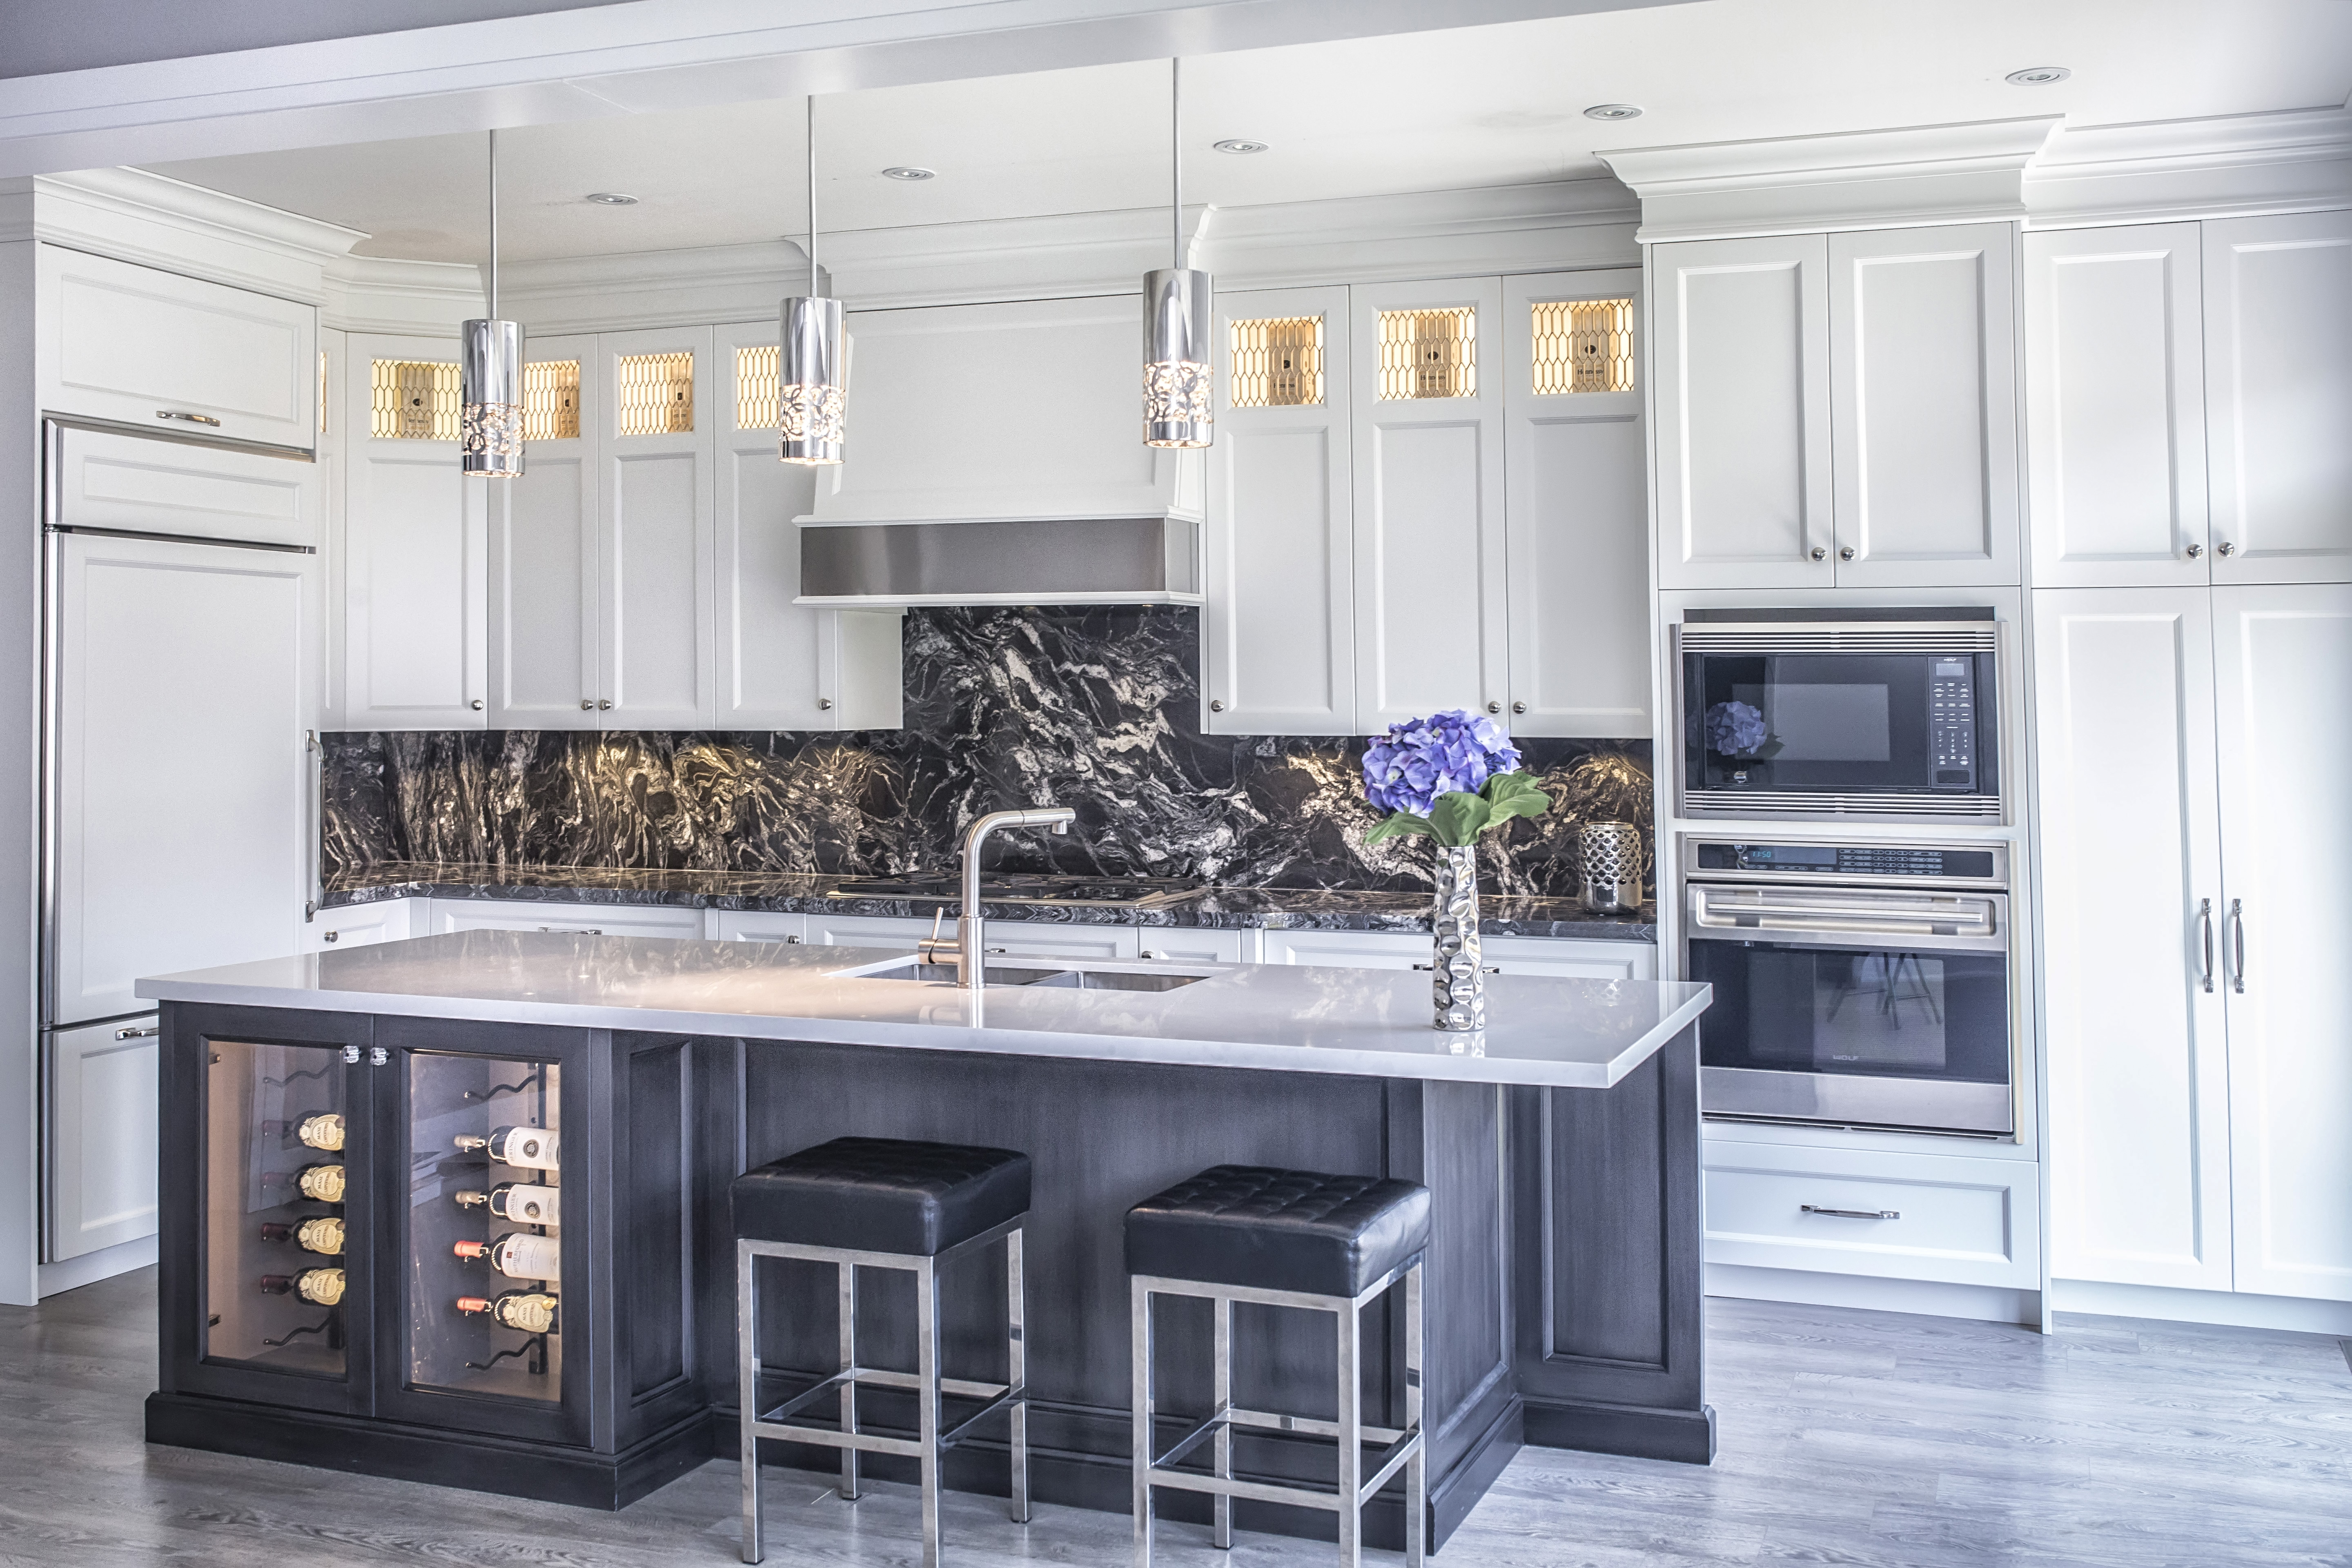 Full-heigh Backsplash